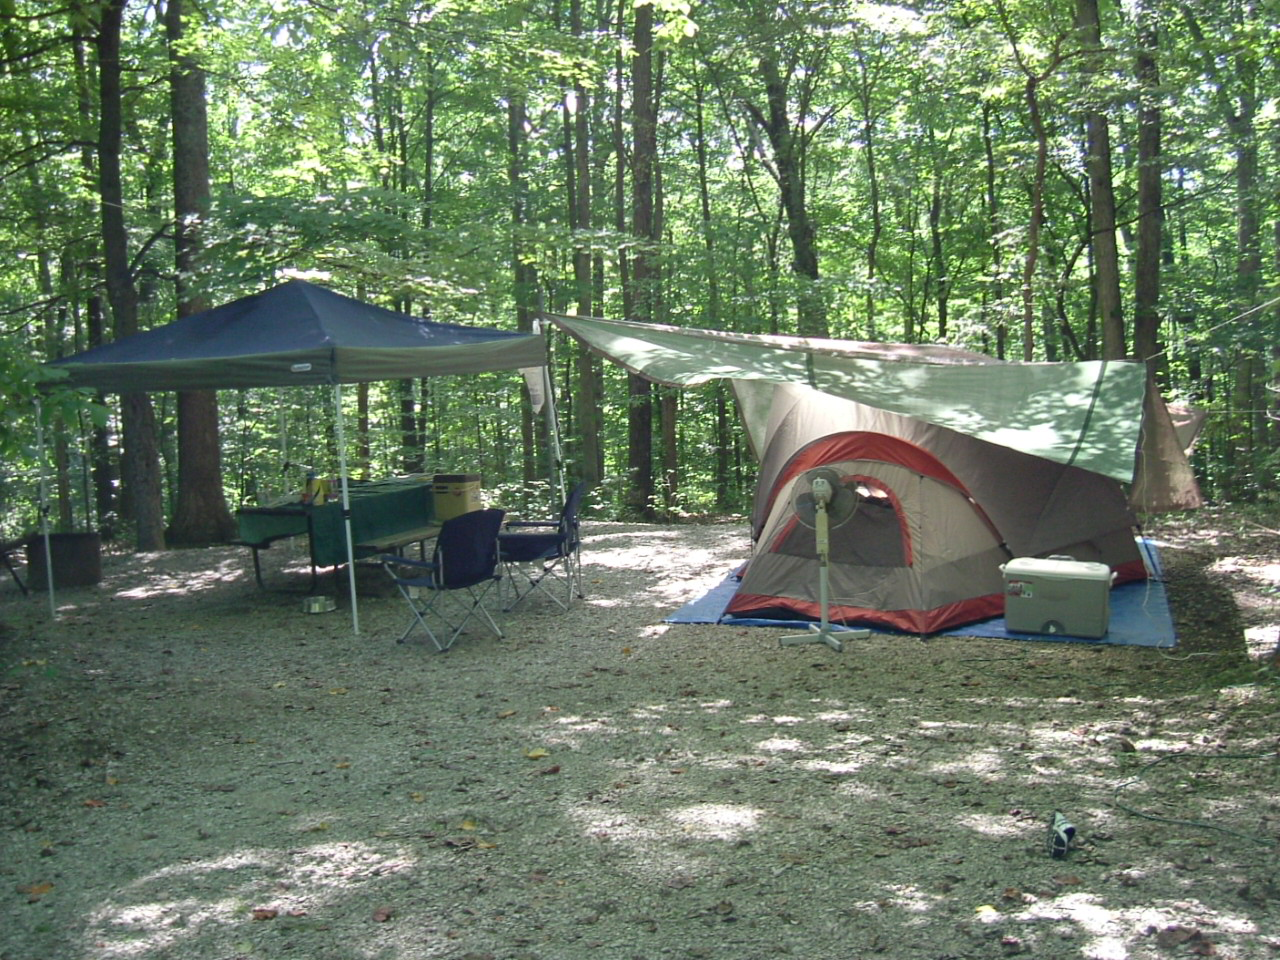 hoosier national forest camping cabins campground camping